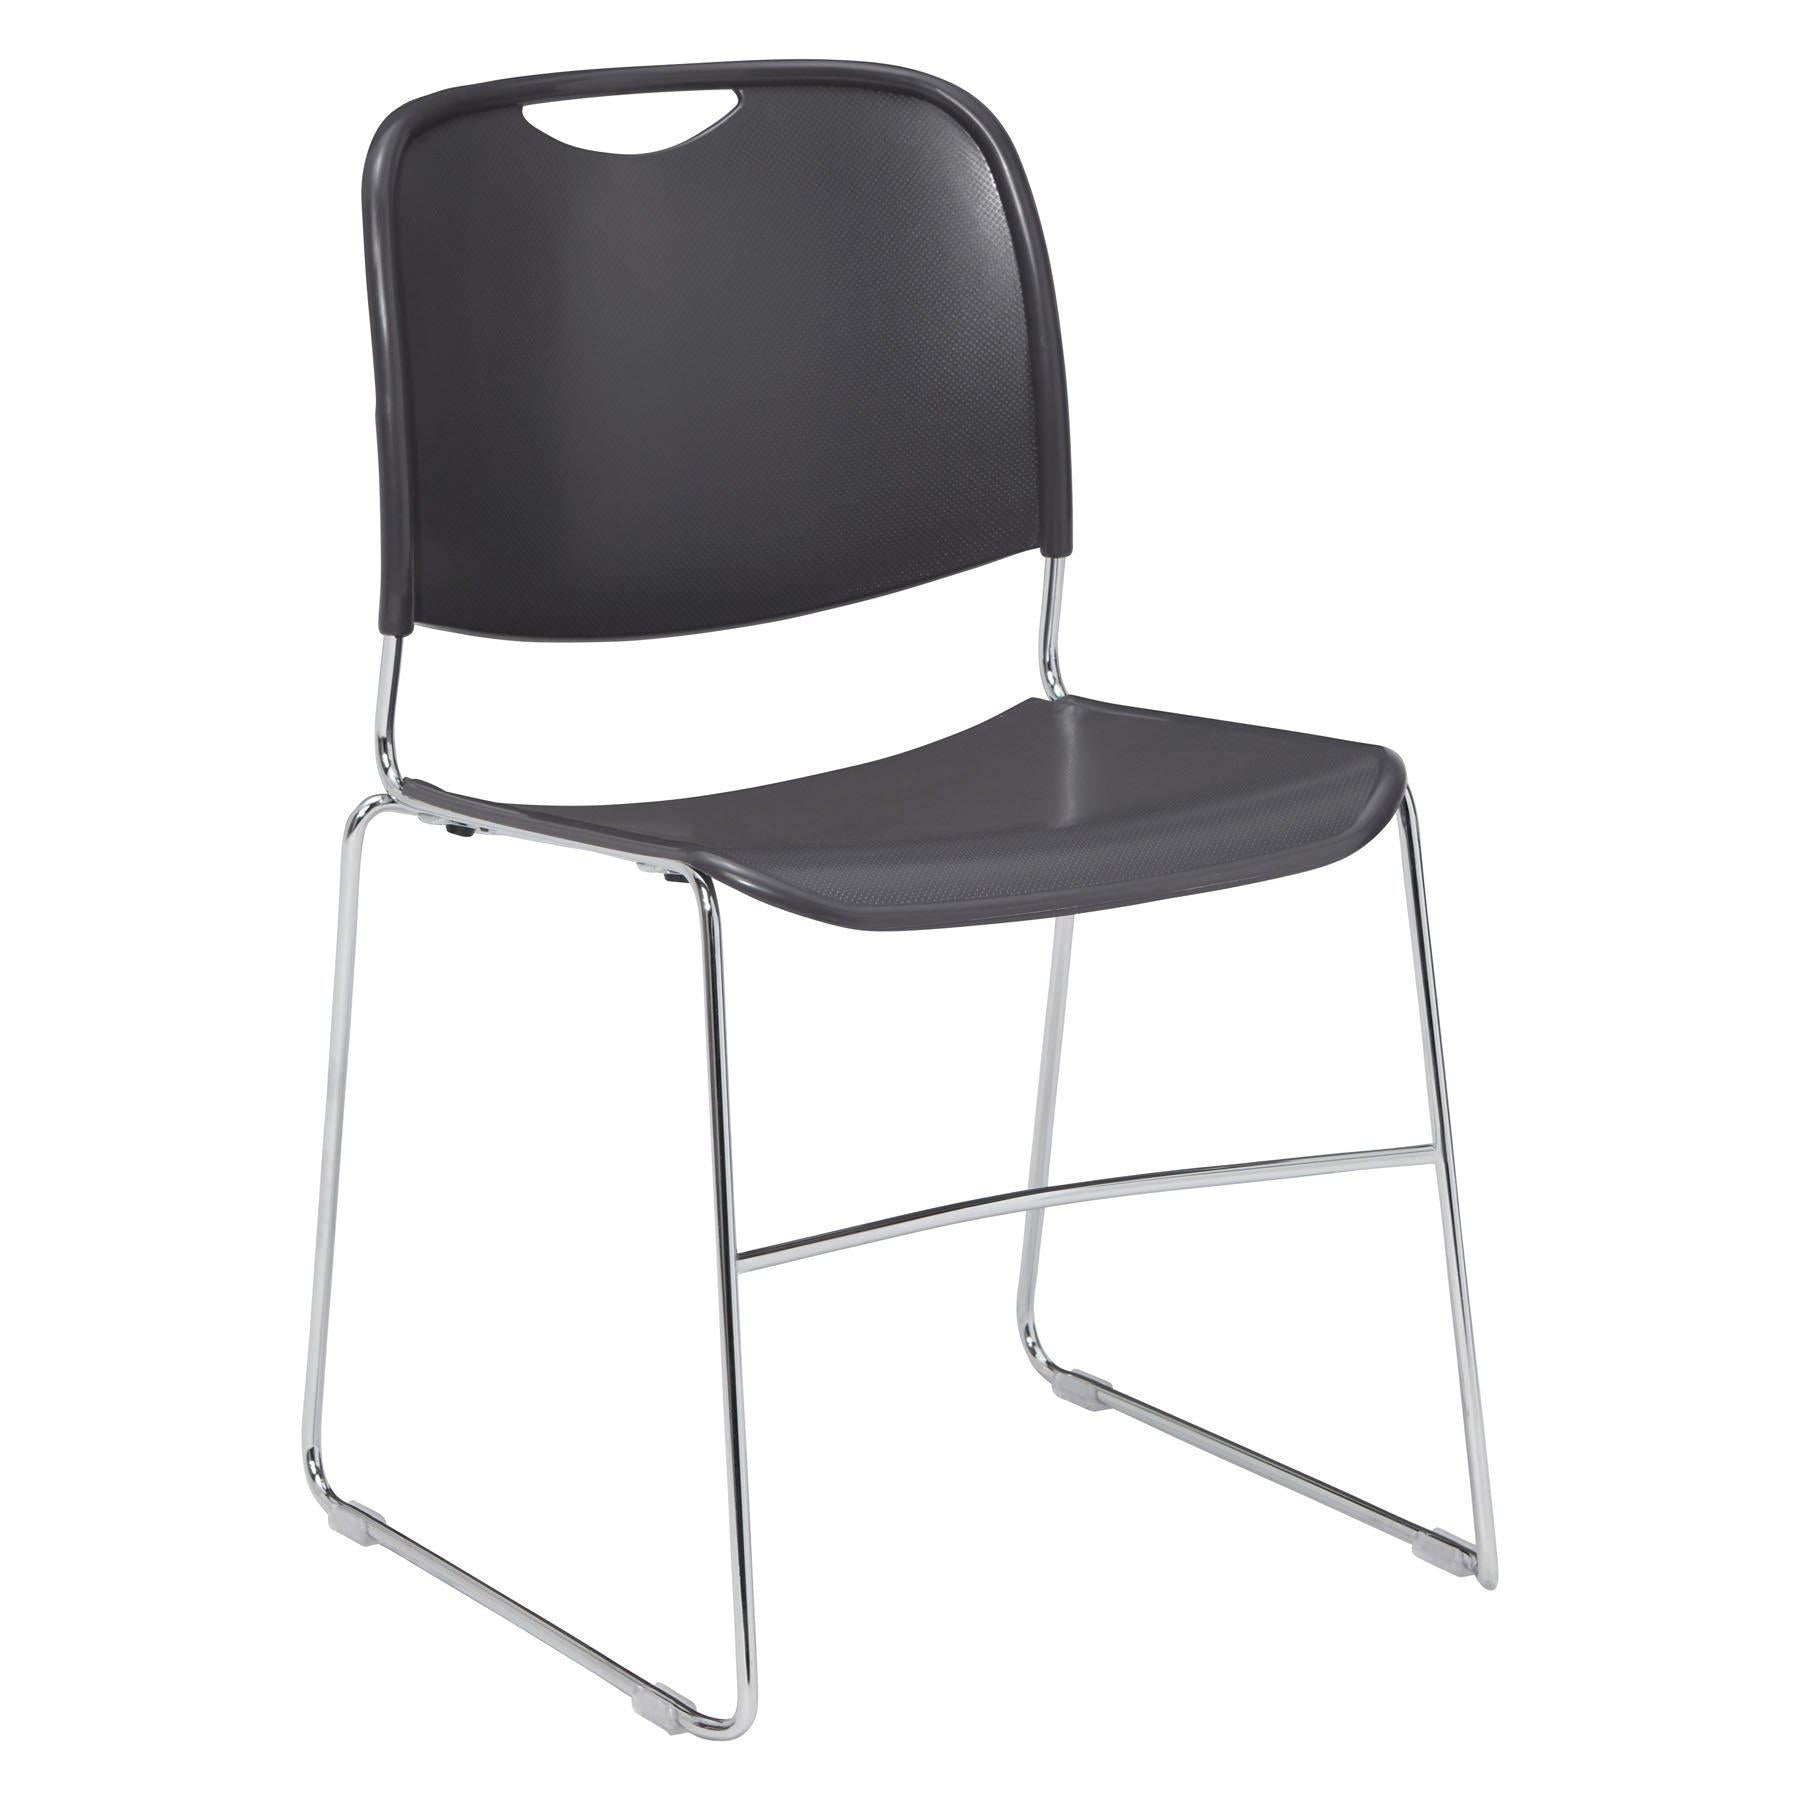 Ultra-Compact Plastic Stack Chair